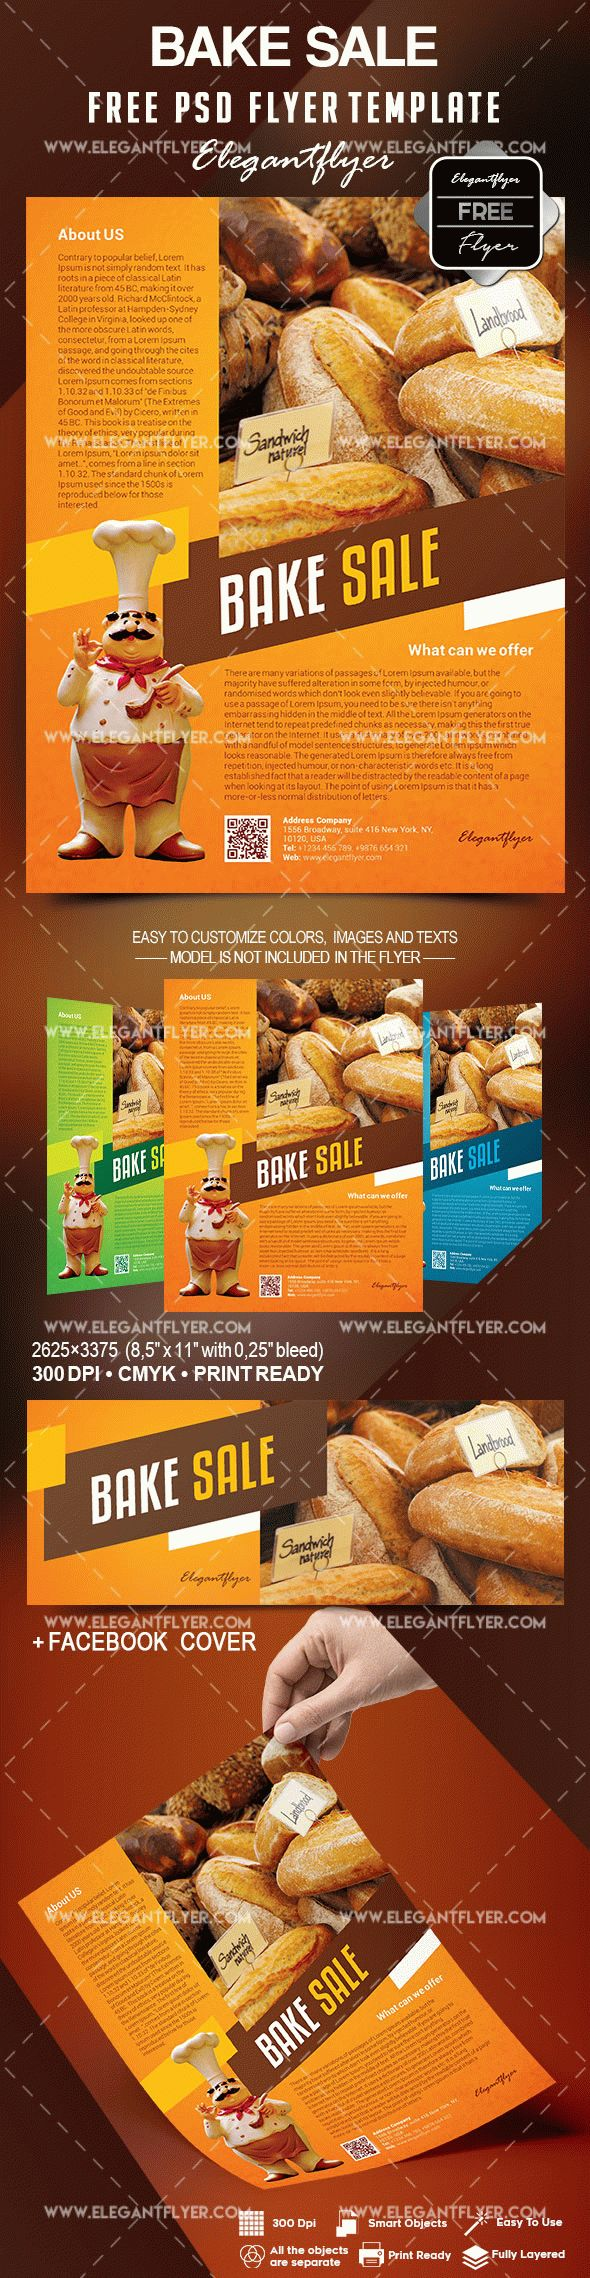 Free Bake Sale Flyer Template In Photoshop + Facebook Cover